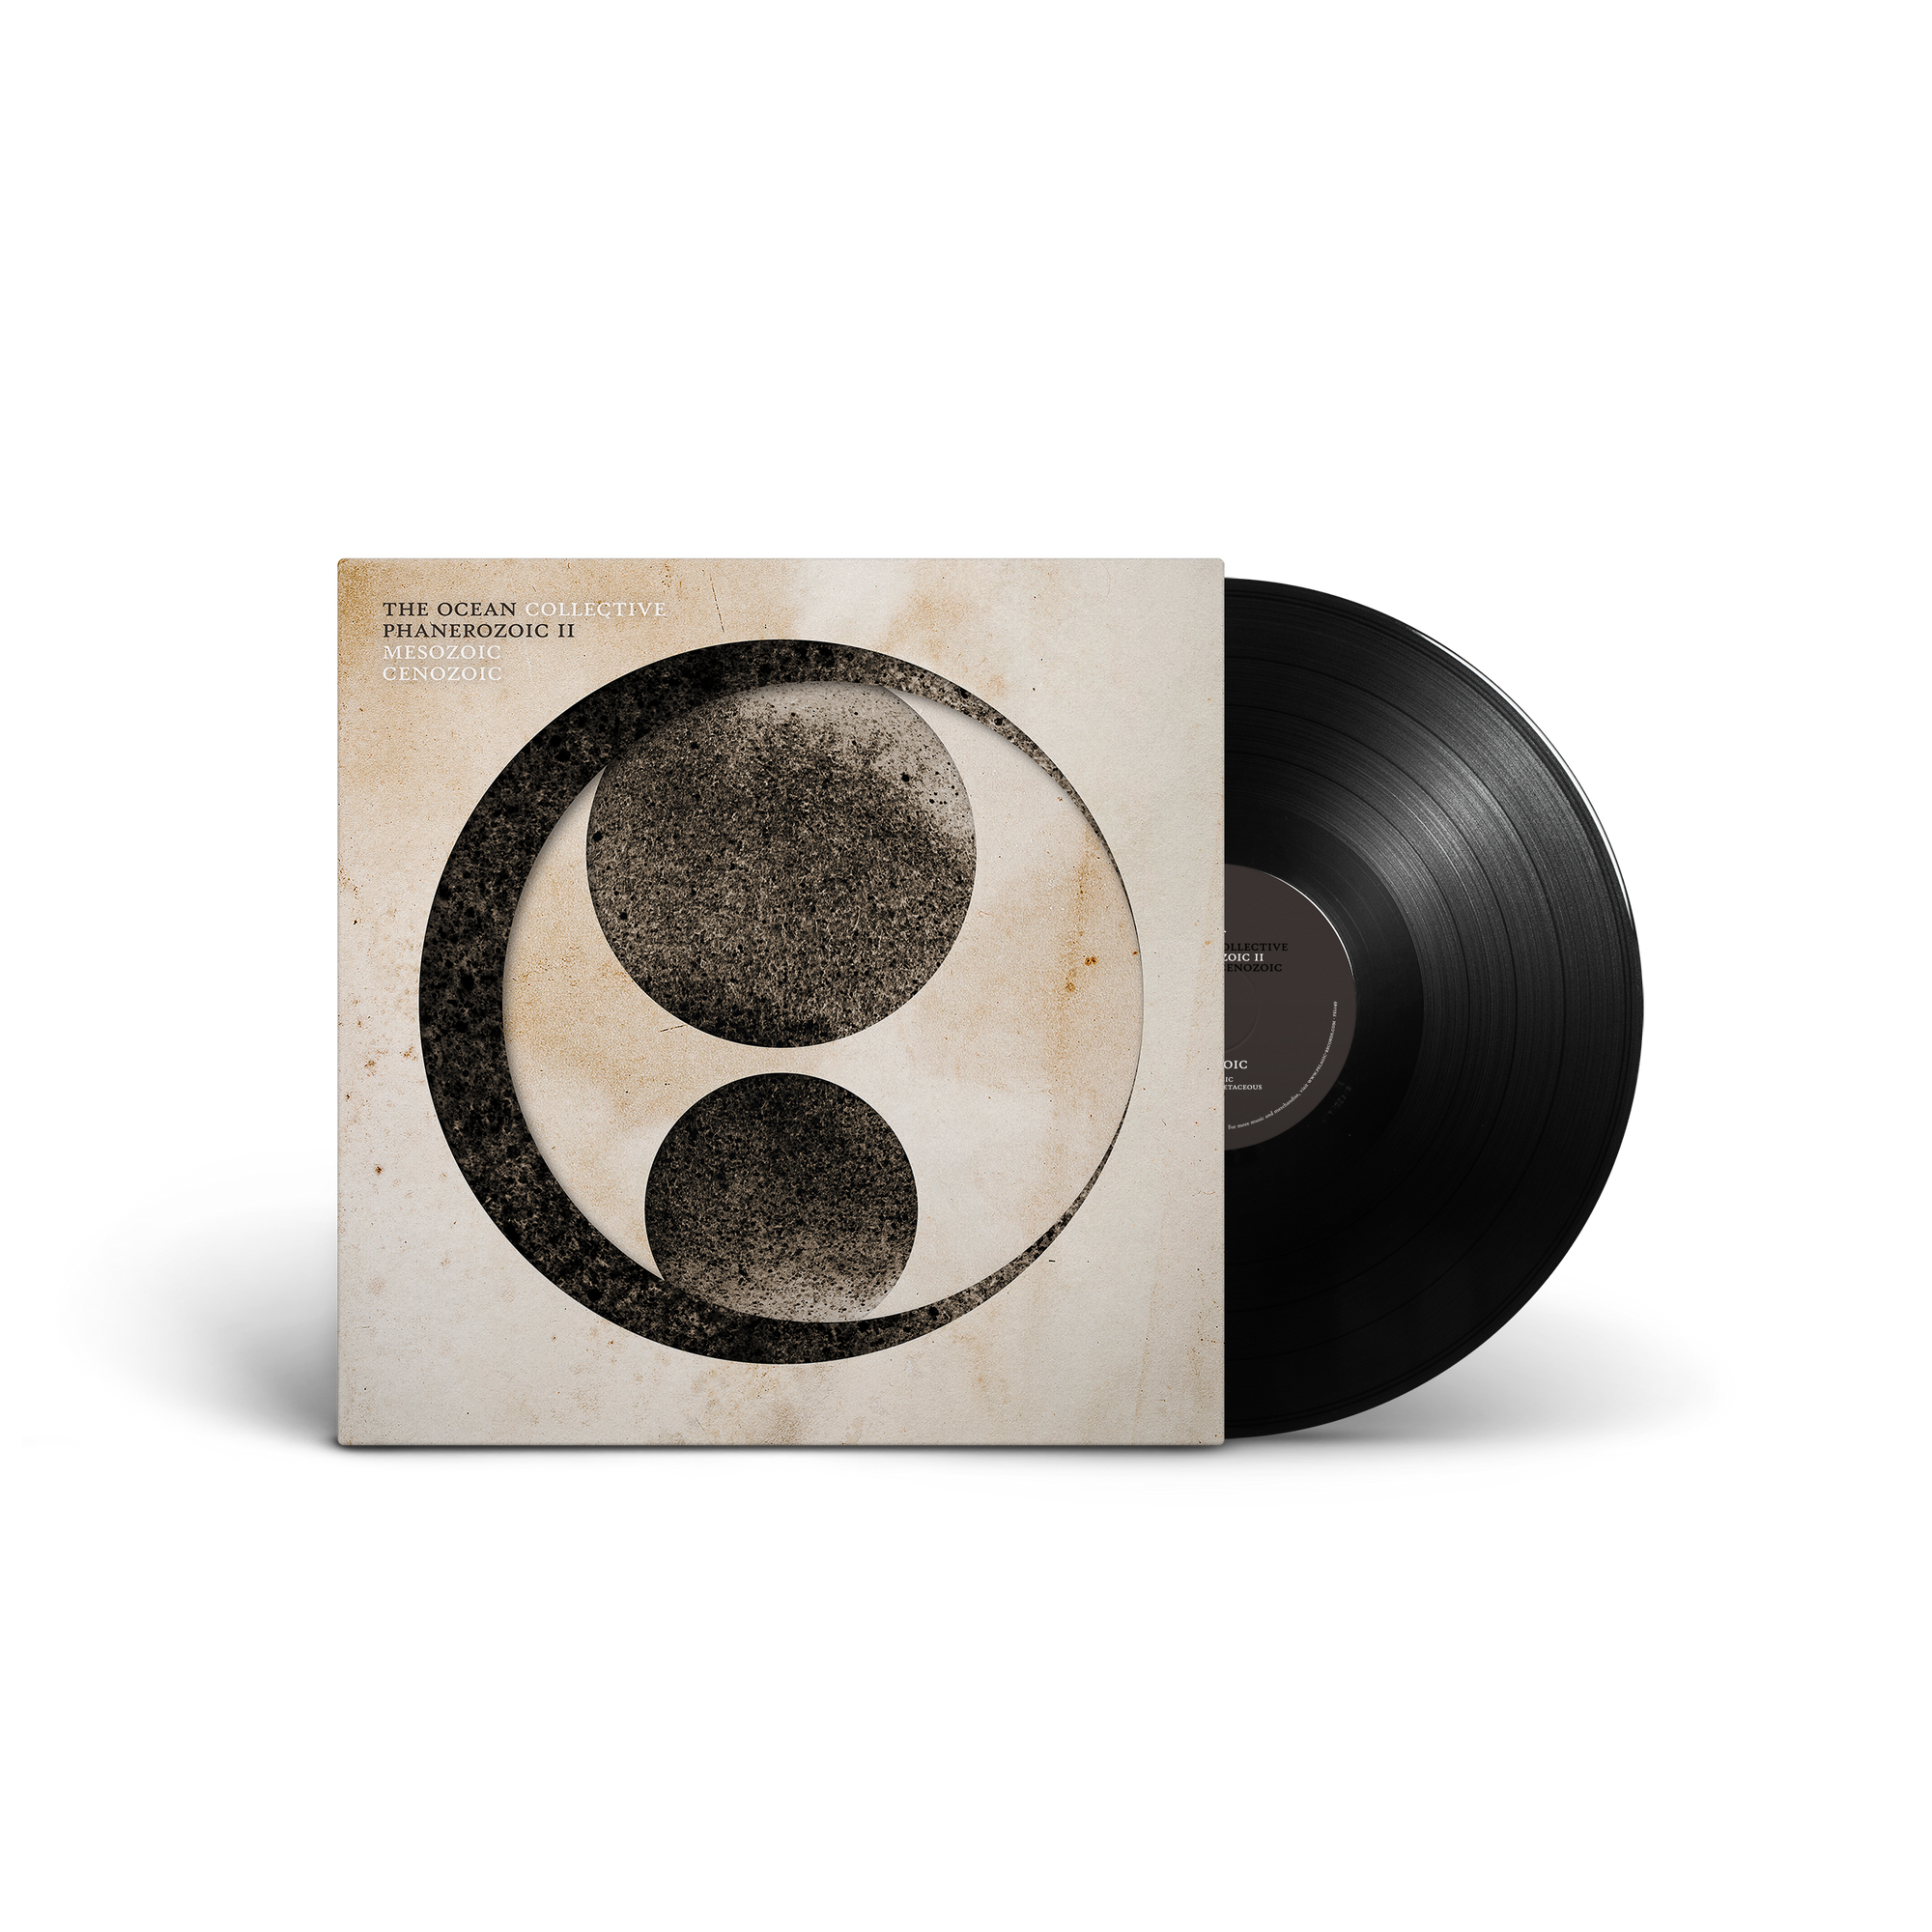 THE OCEAN // PHANEROZOIC II - BLACK VINYL (LP) - Wild Thing Records